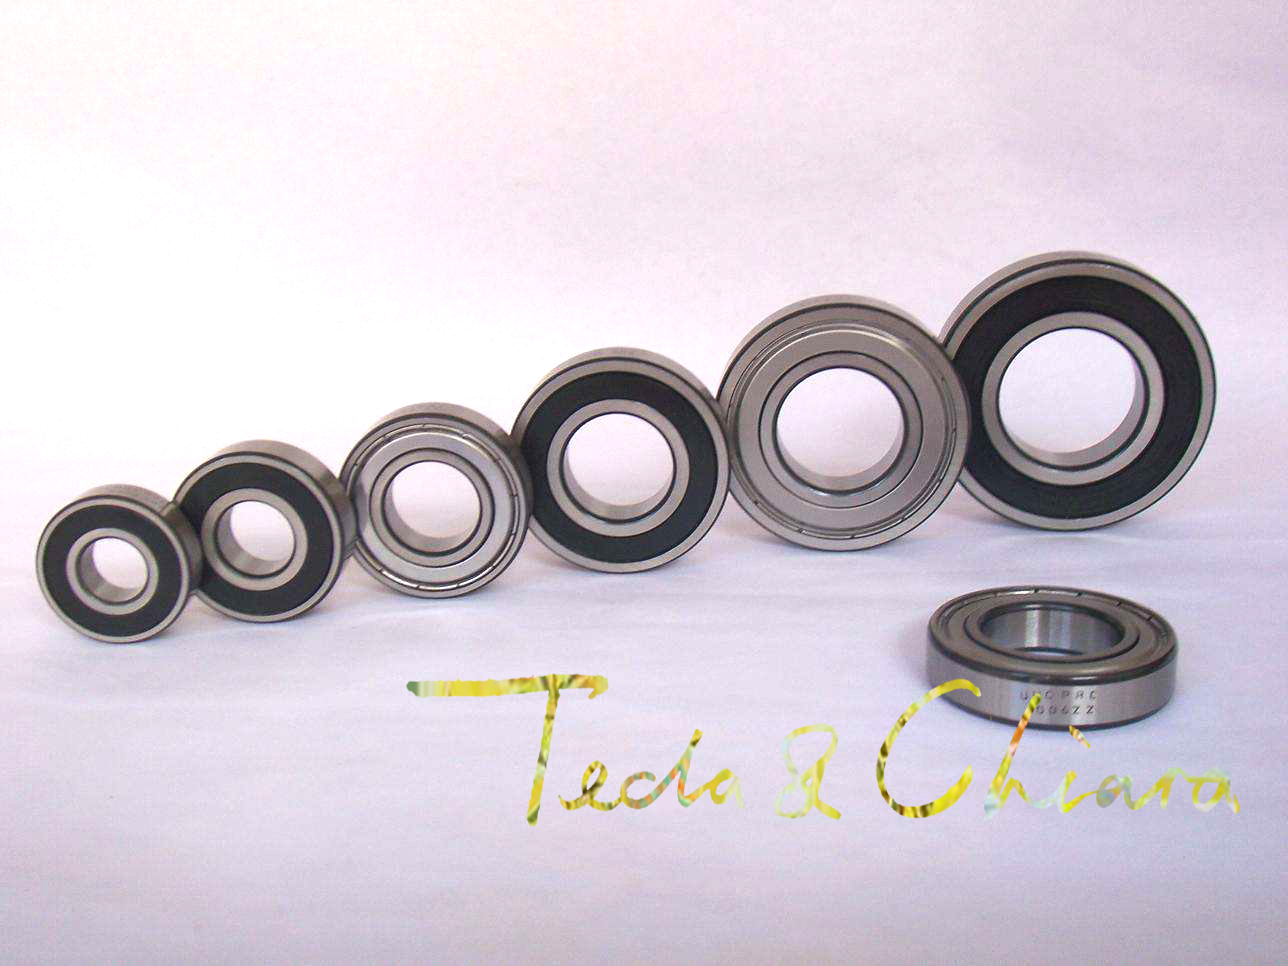 6301 6301ZZ 6301RS 6301-2Z 6301Z 6301-2RS ZZ RS RZ 2RZ Deep Groove Ball Bearings 12 x 37 x 12mm High Quality диван 3le rs vl7217 47a z 08 kd5110